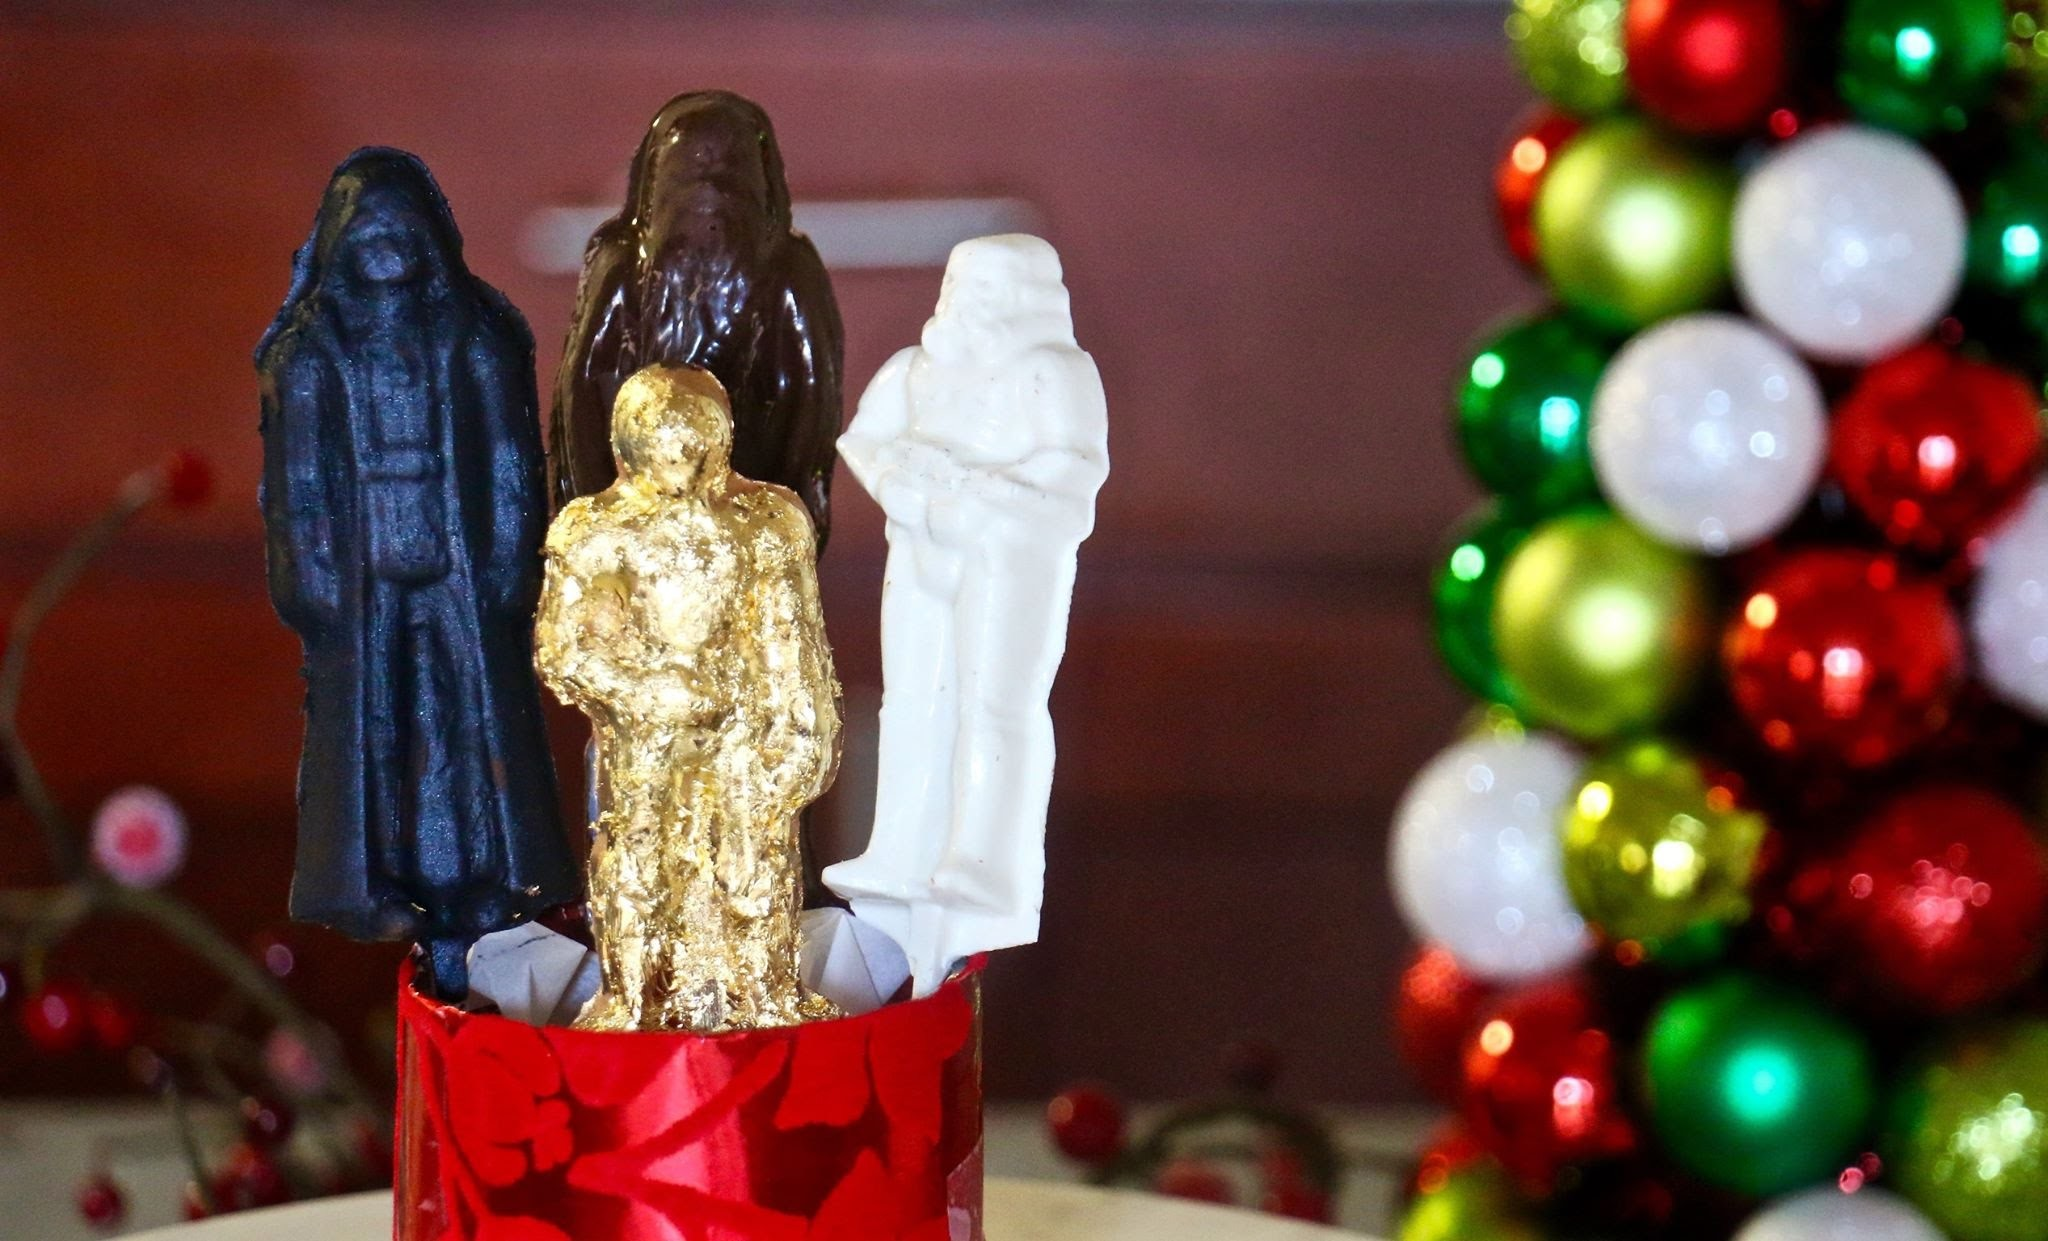 DIY: Star Wars Chocolate Suckers (edible christmas gifts) - Kena Peay (Day 12)